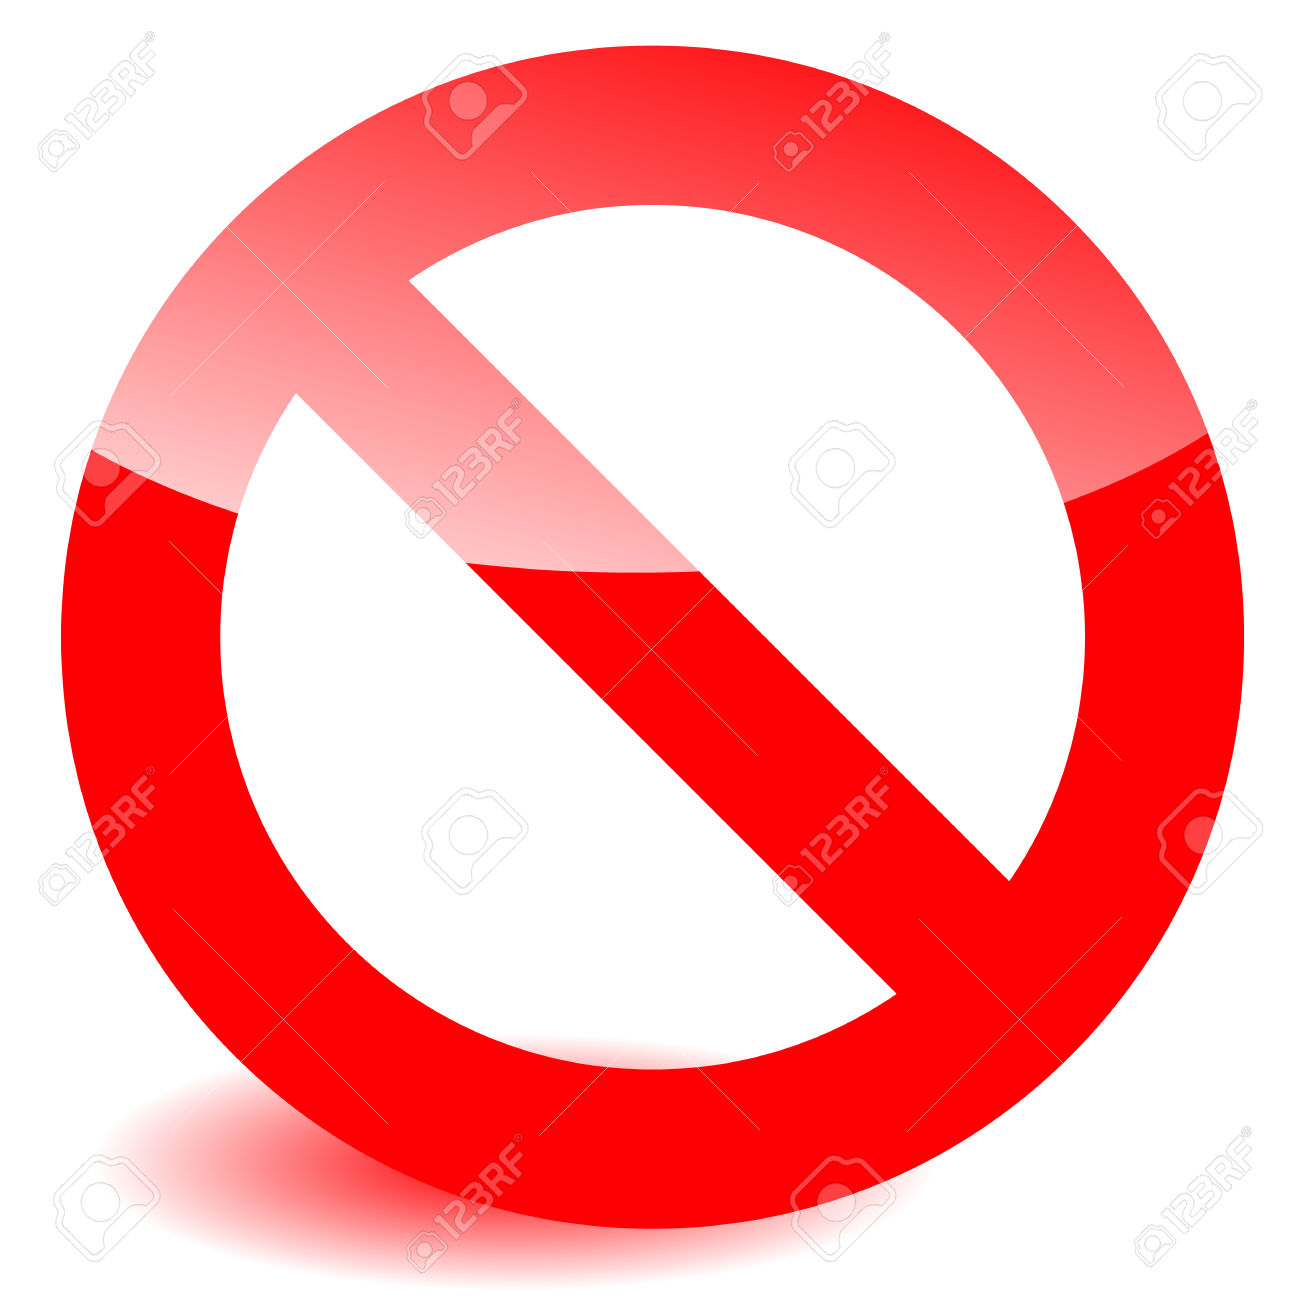 Prohibition, Restriction Sign Vector For Limit, Stop, Disallowed.